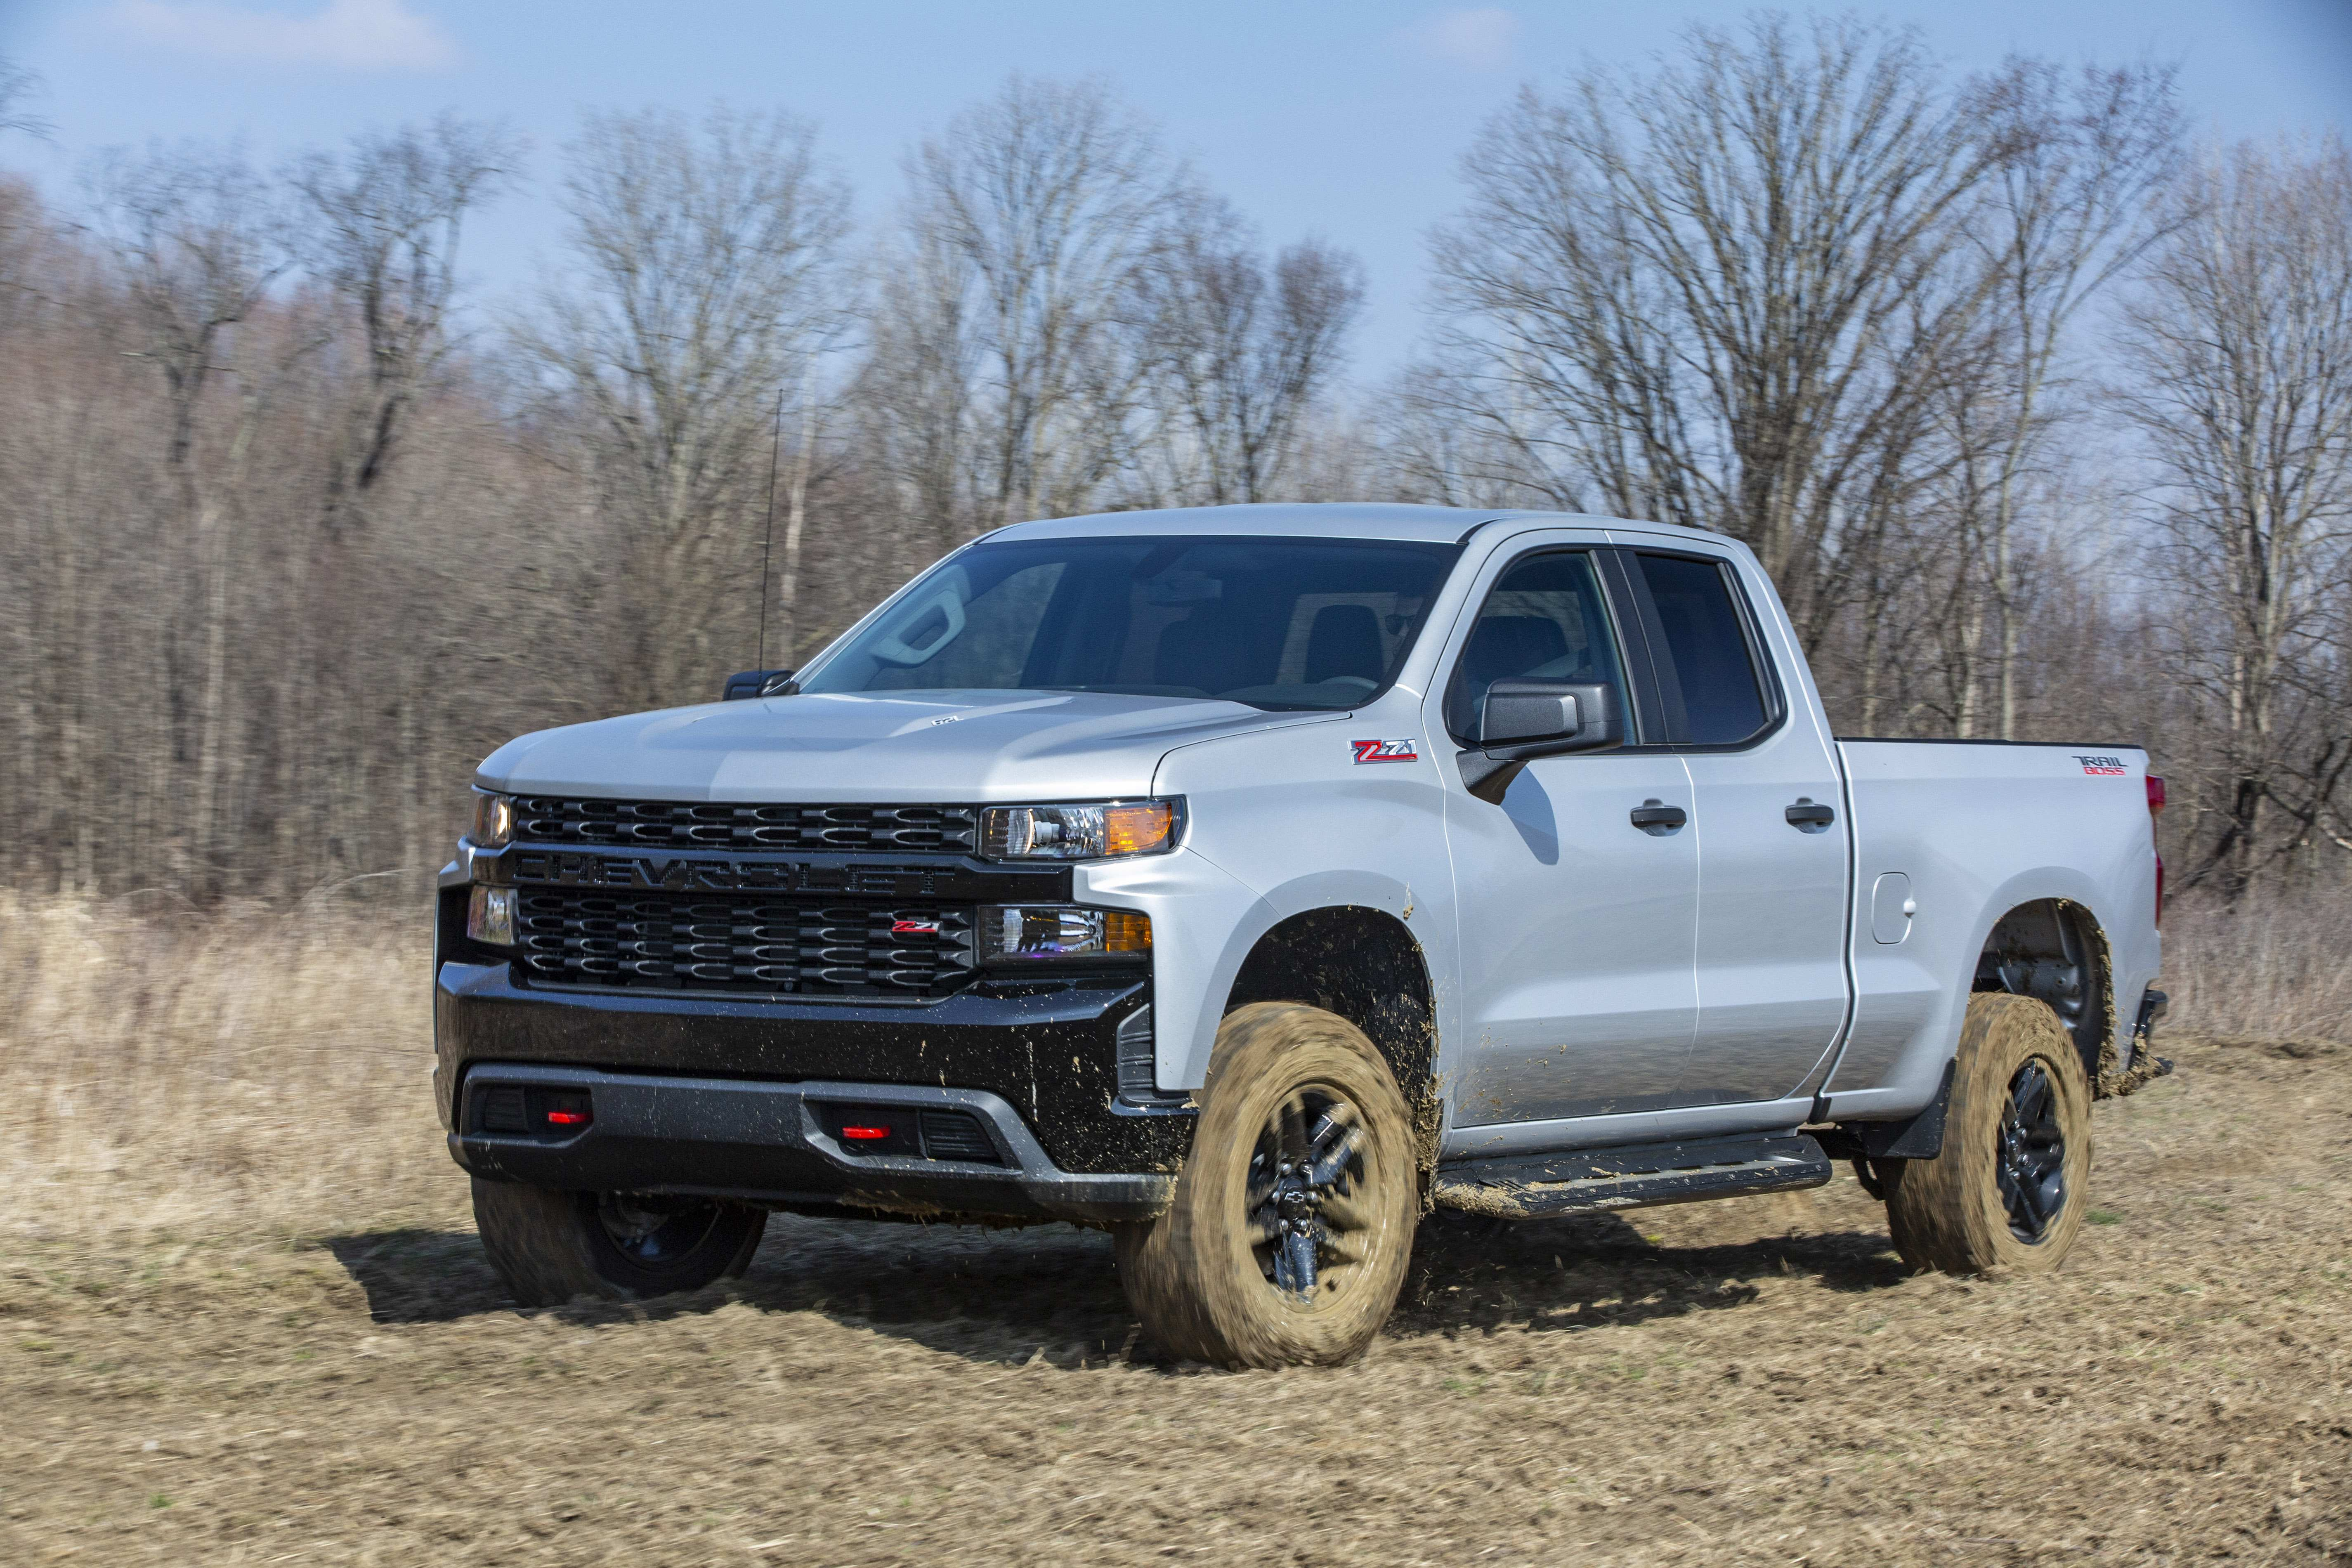 23 All New Chevrolet Z71 2020 Price And Review